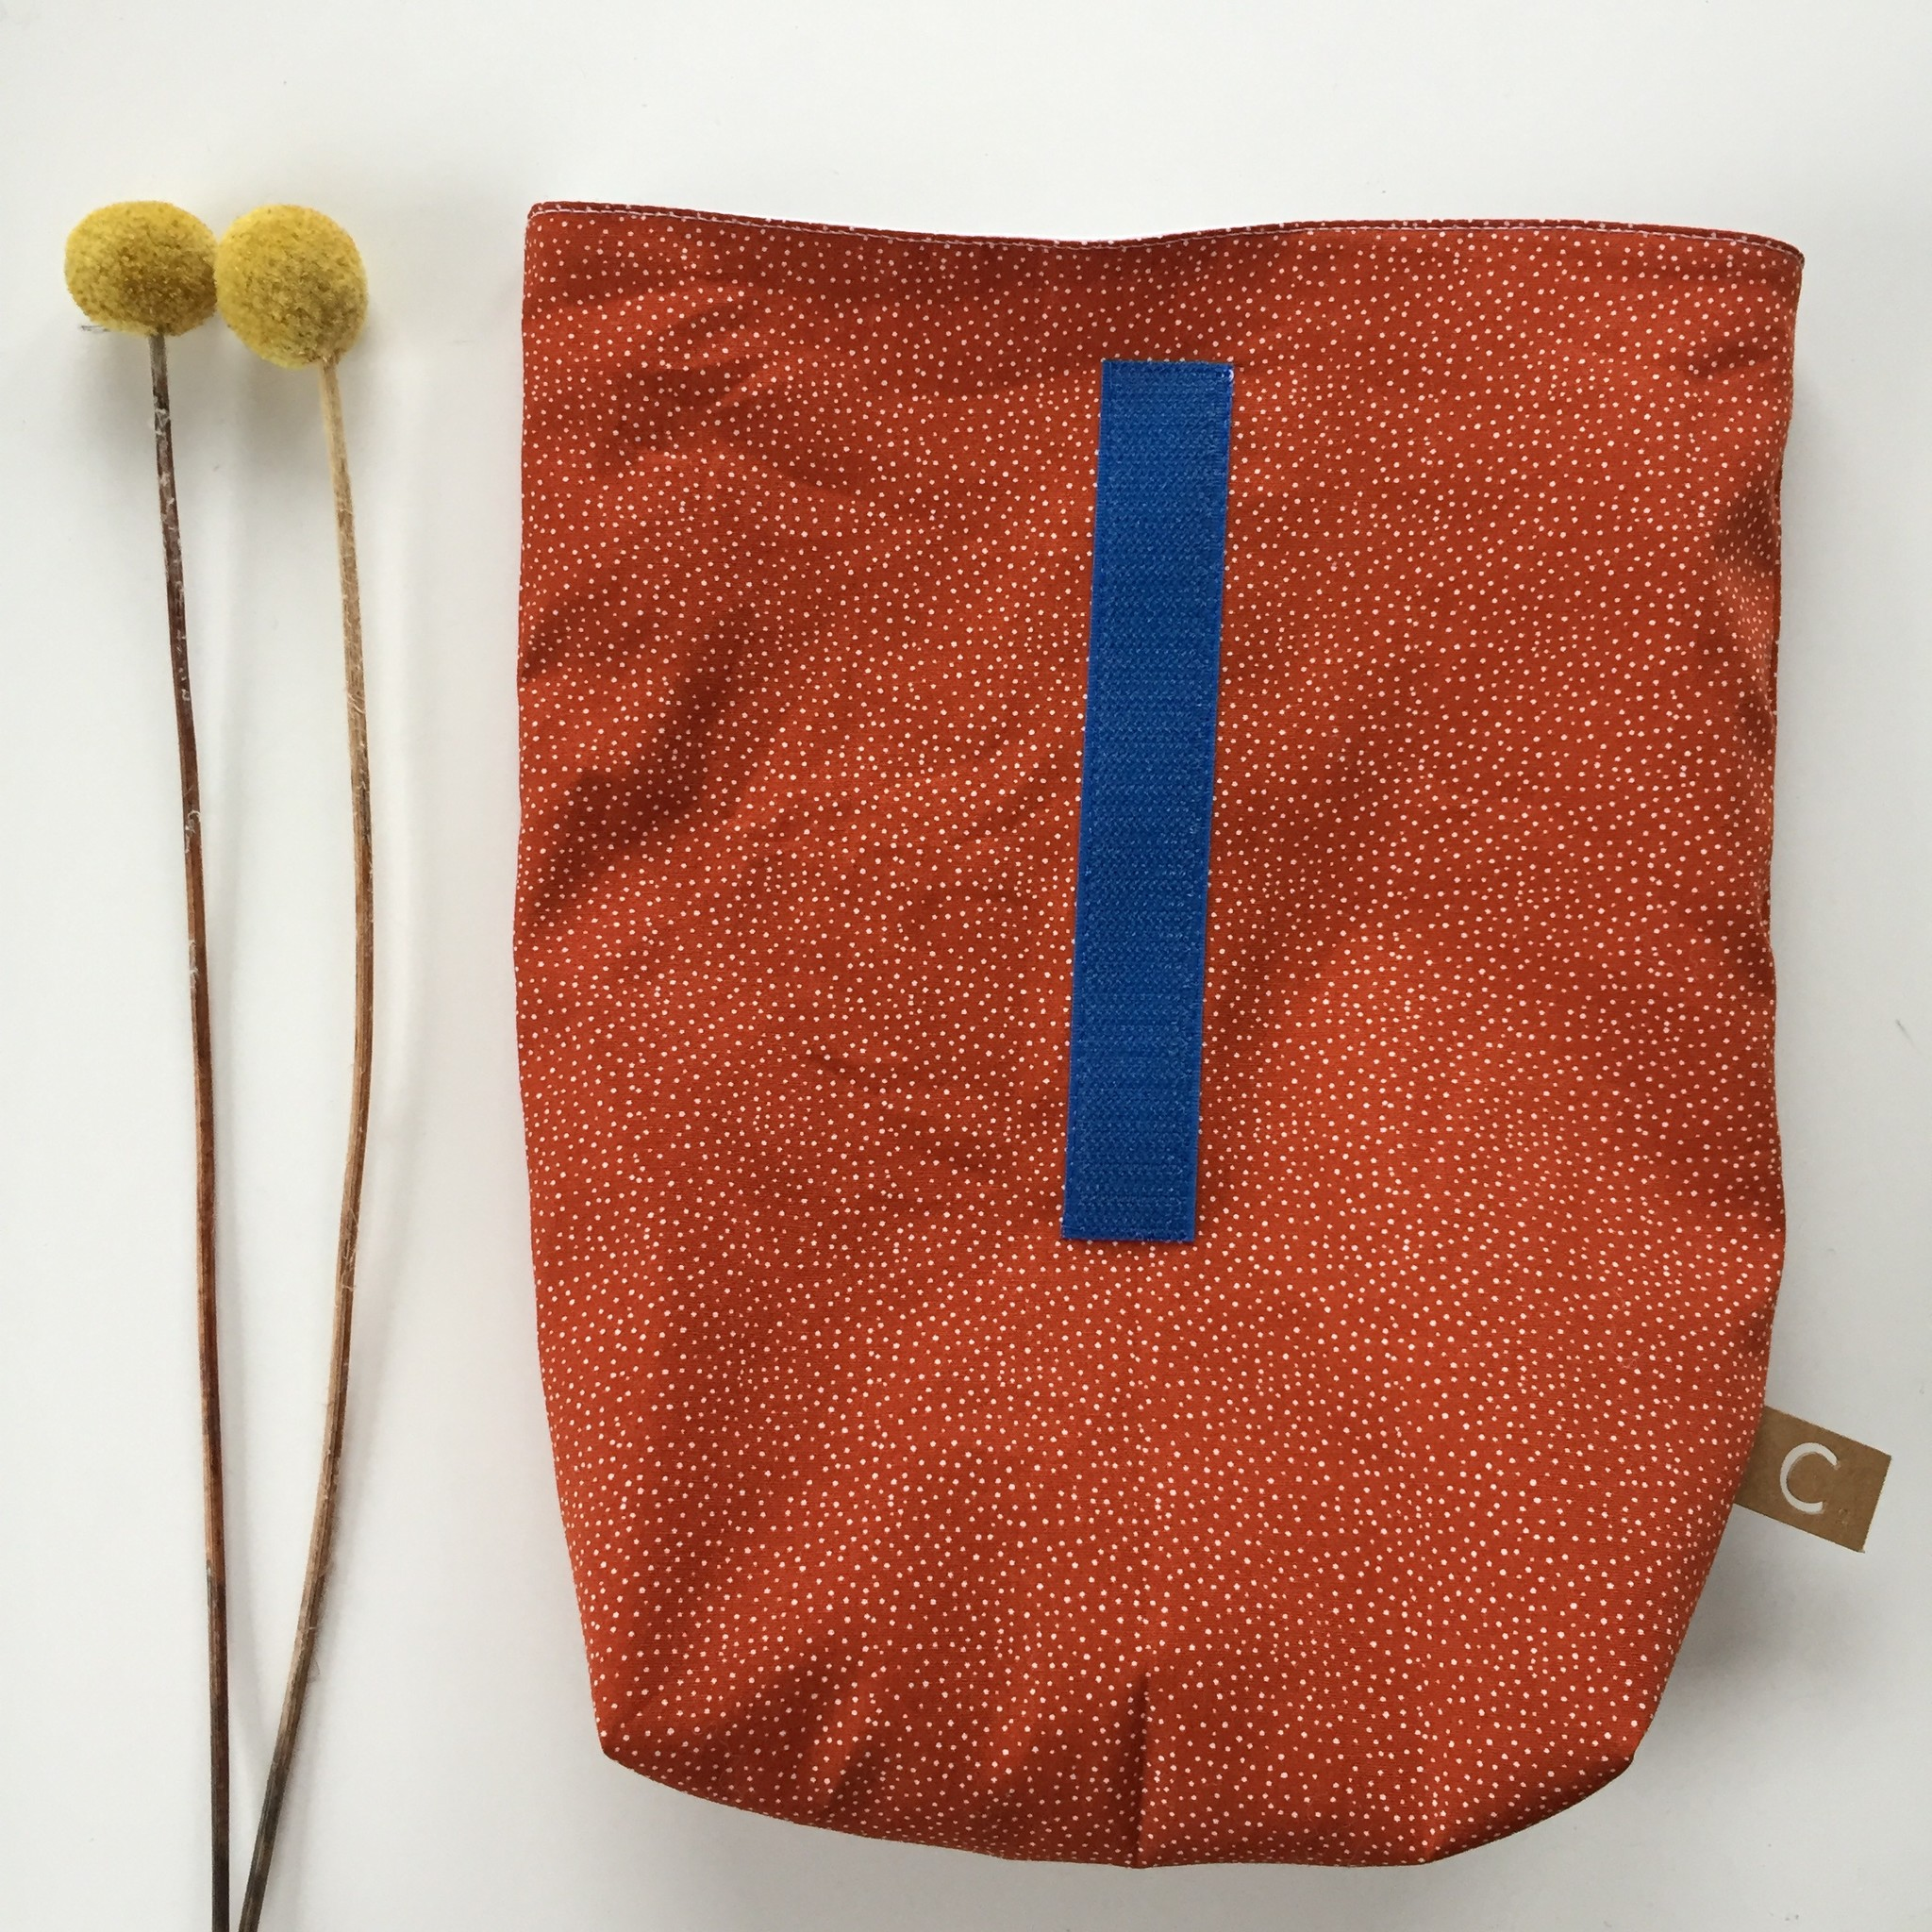 Lunch bag orange-coloured made of cotton fabric